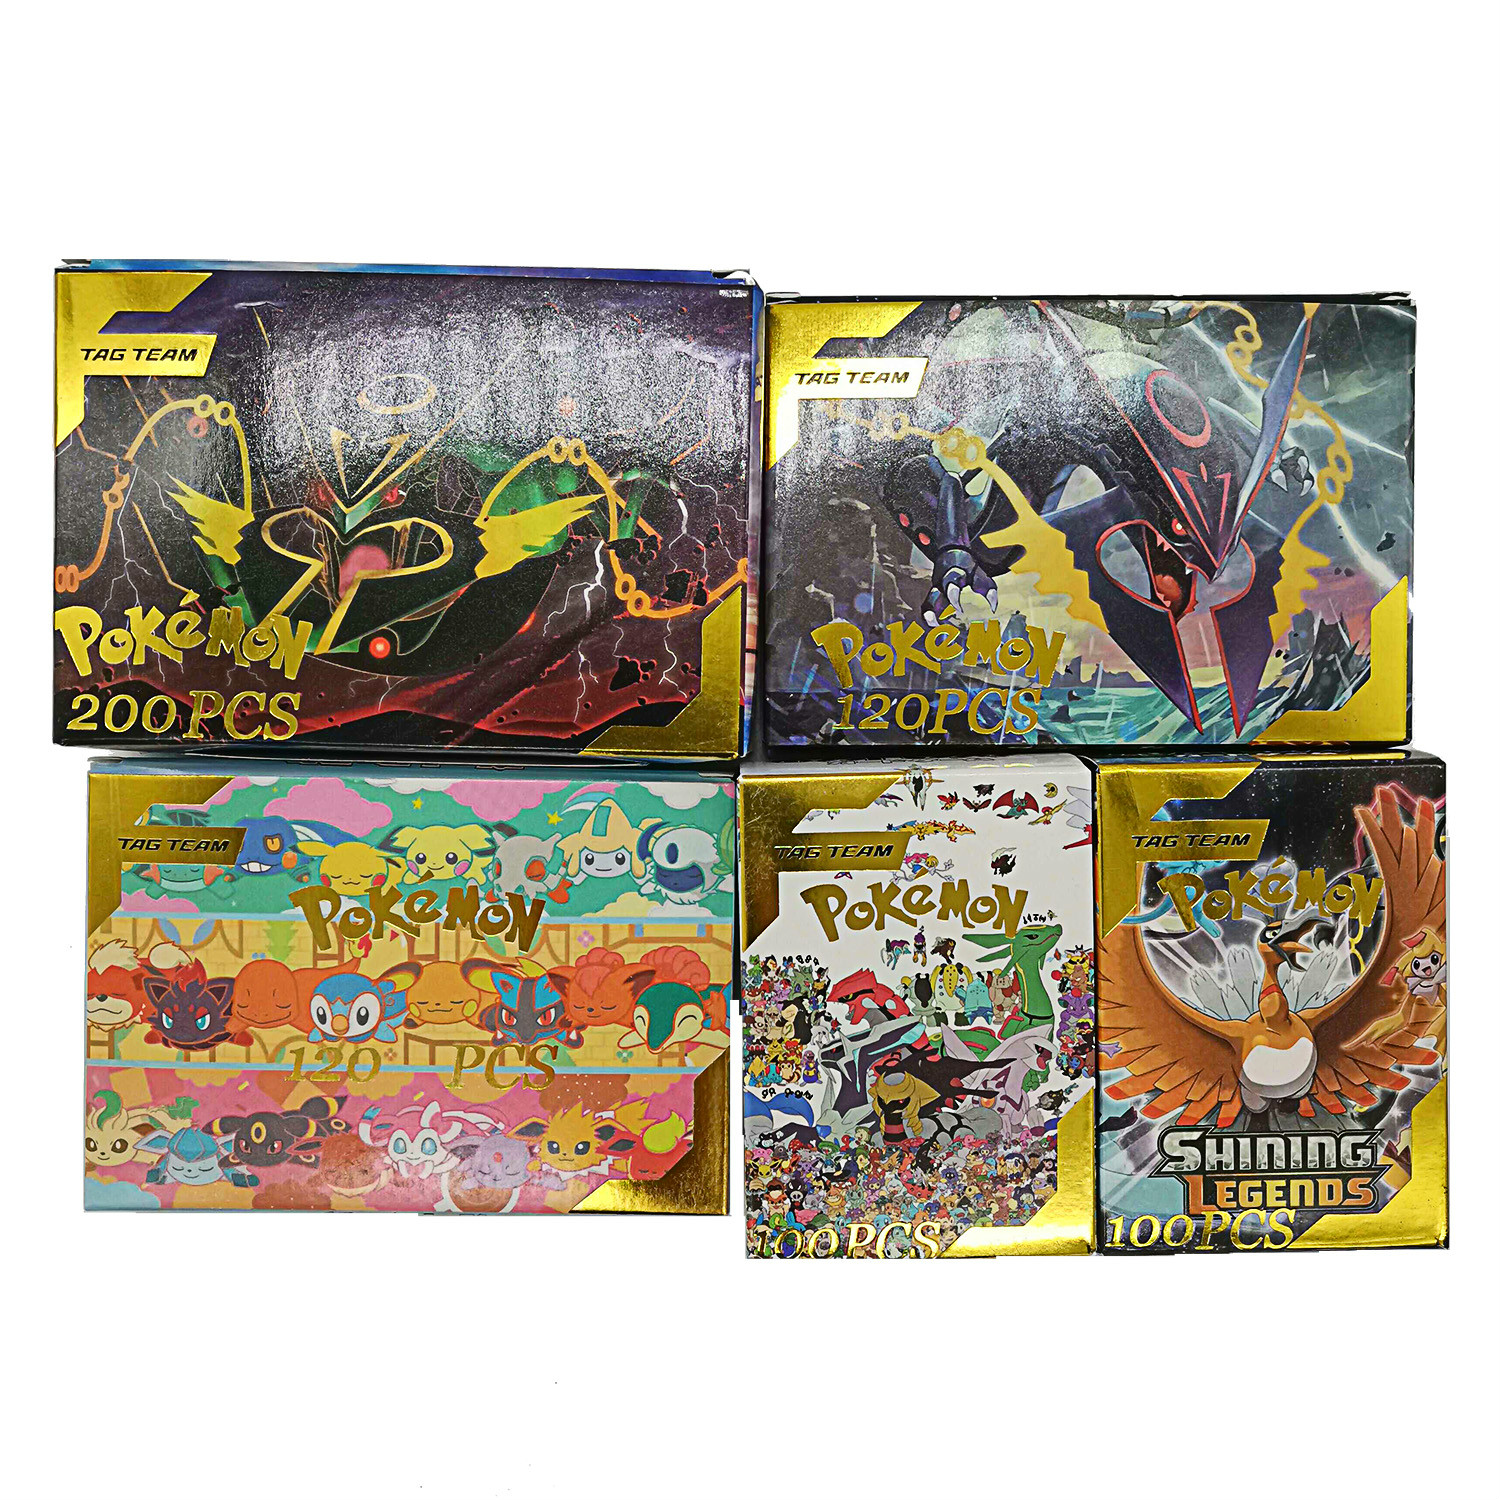 TAKARA TOMY Pokemon Battle Toys Hobbies Hobby Collectibles Game Collection Anime Cards For Children Christmas Gift